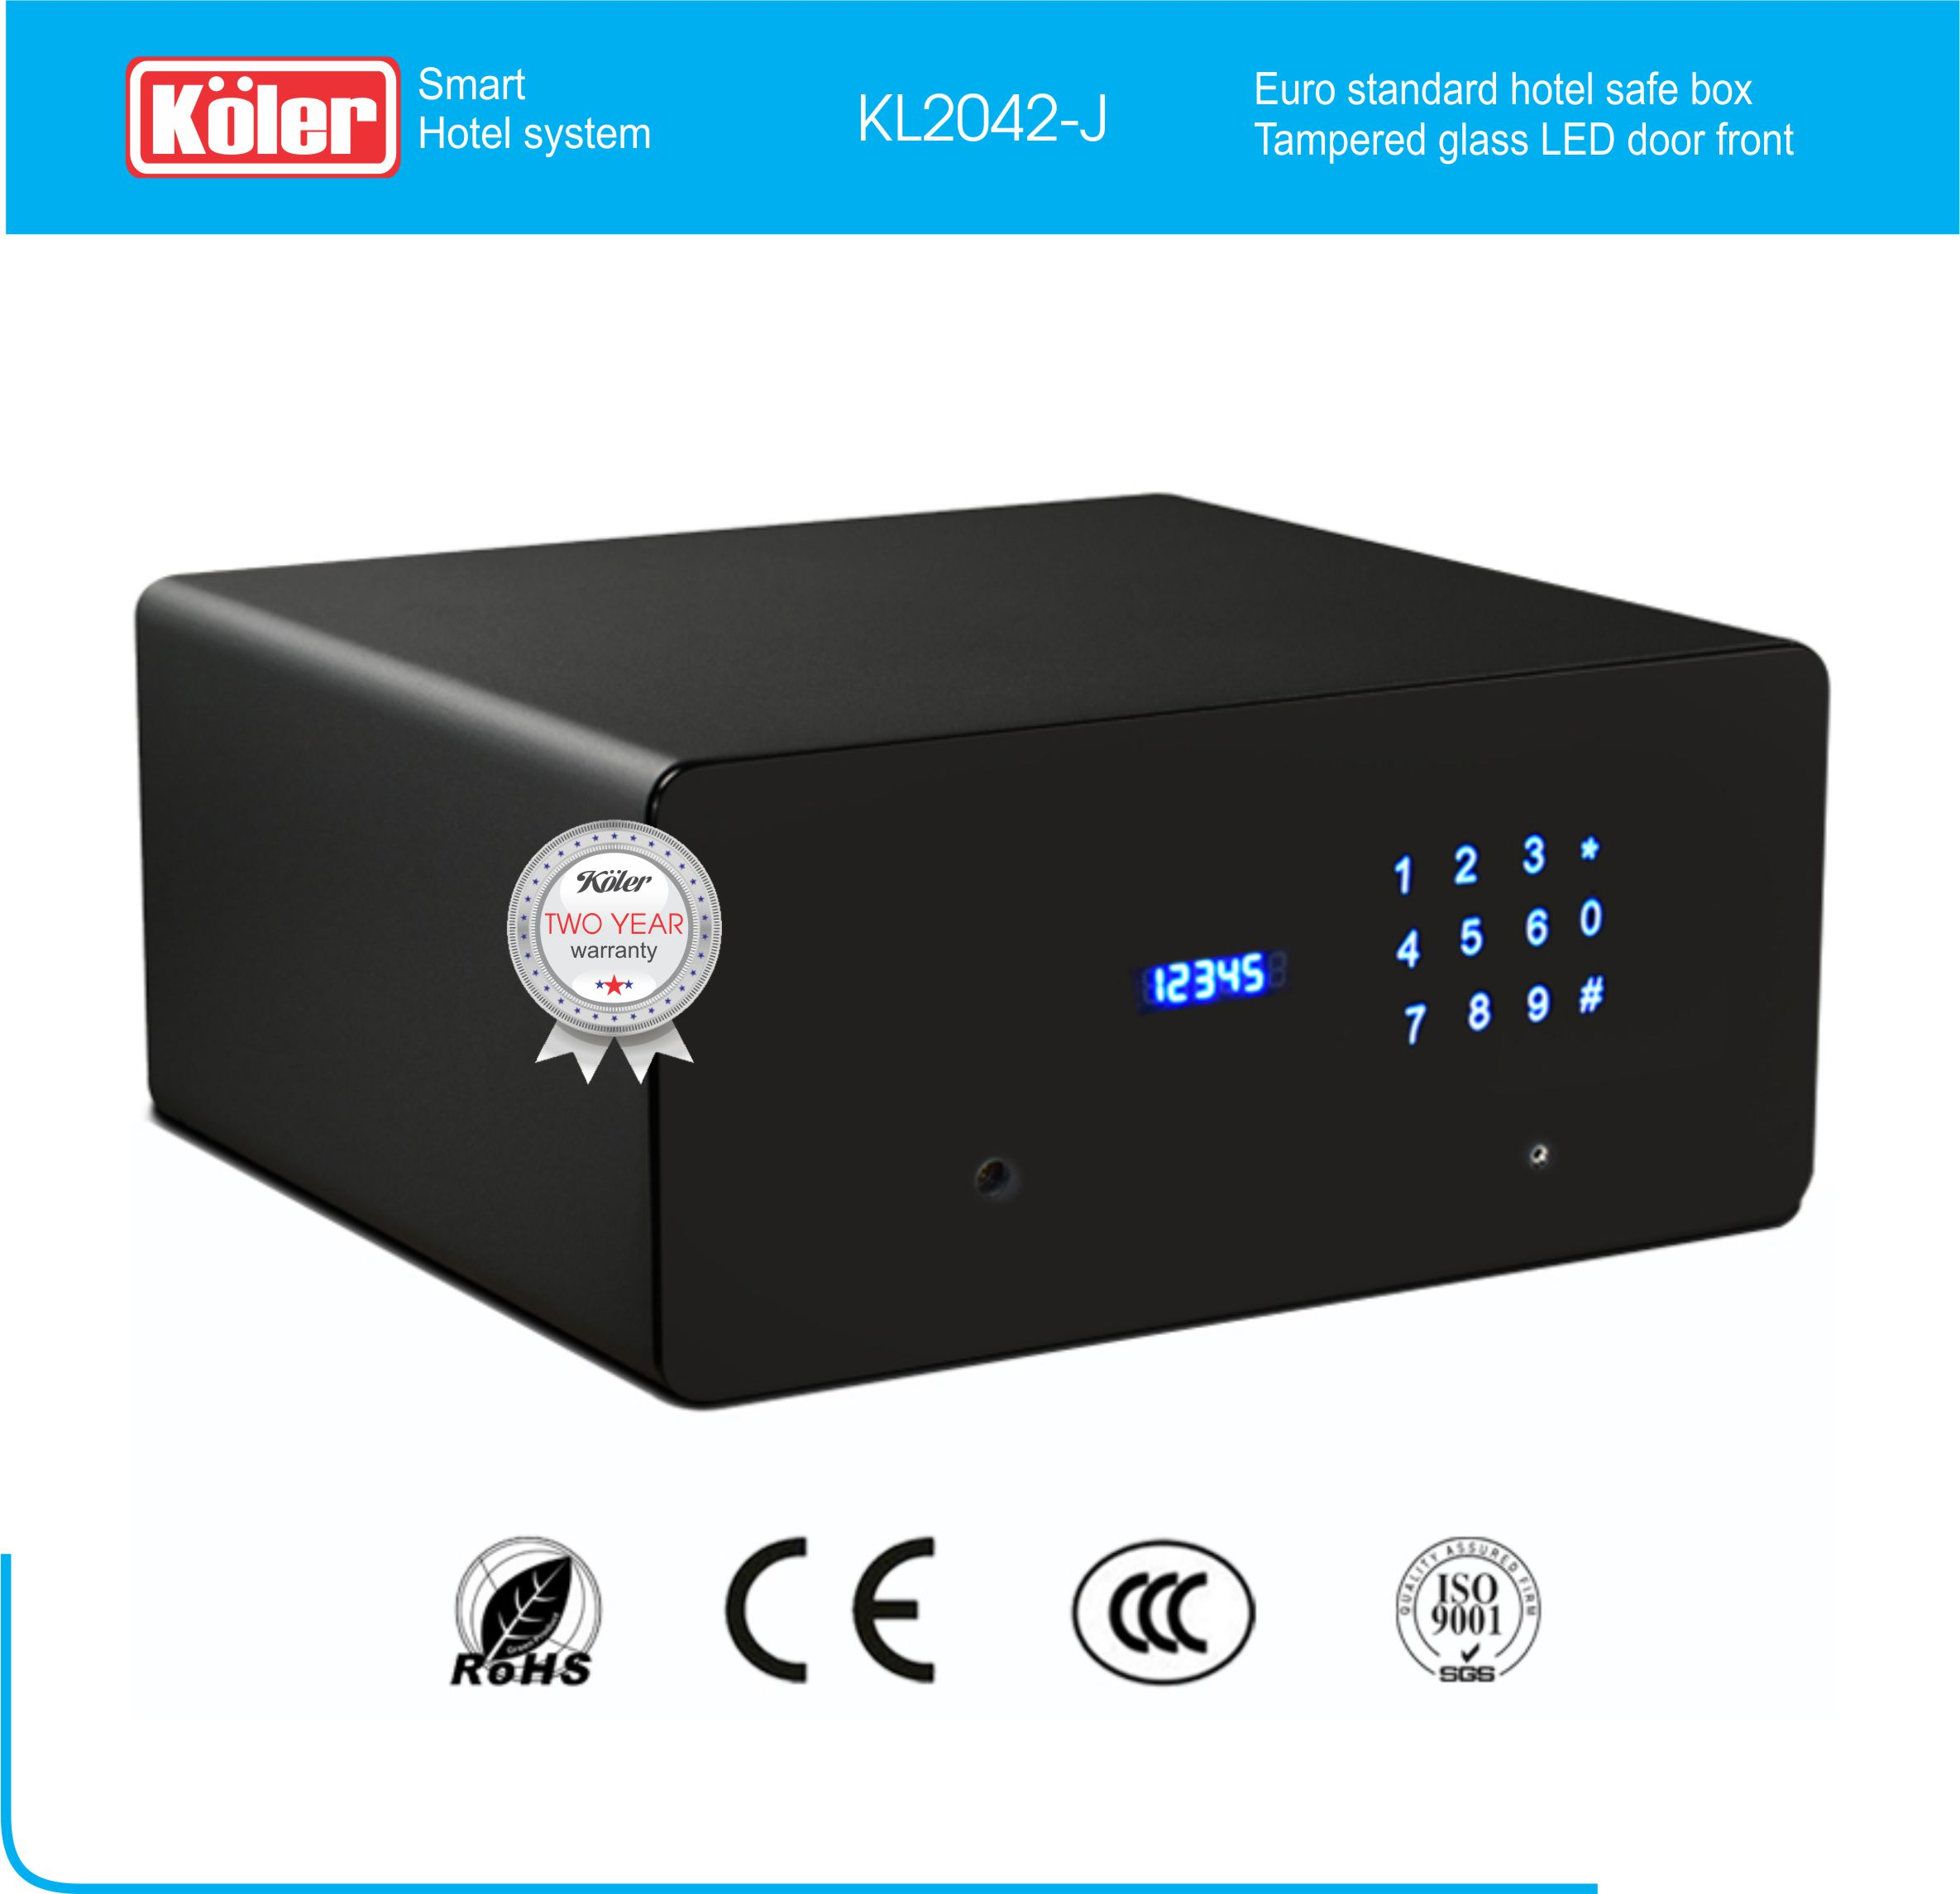 Safe box KL2042-J